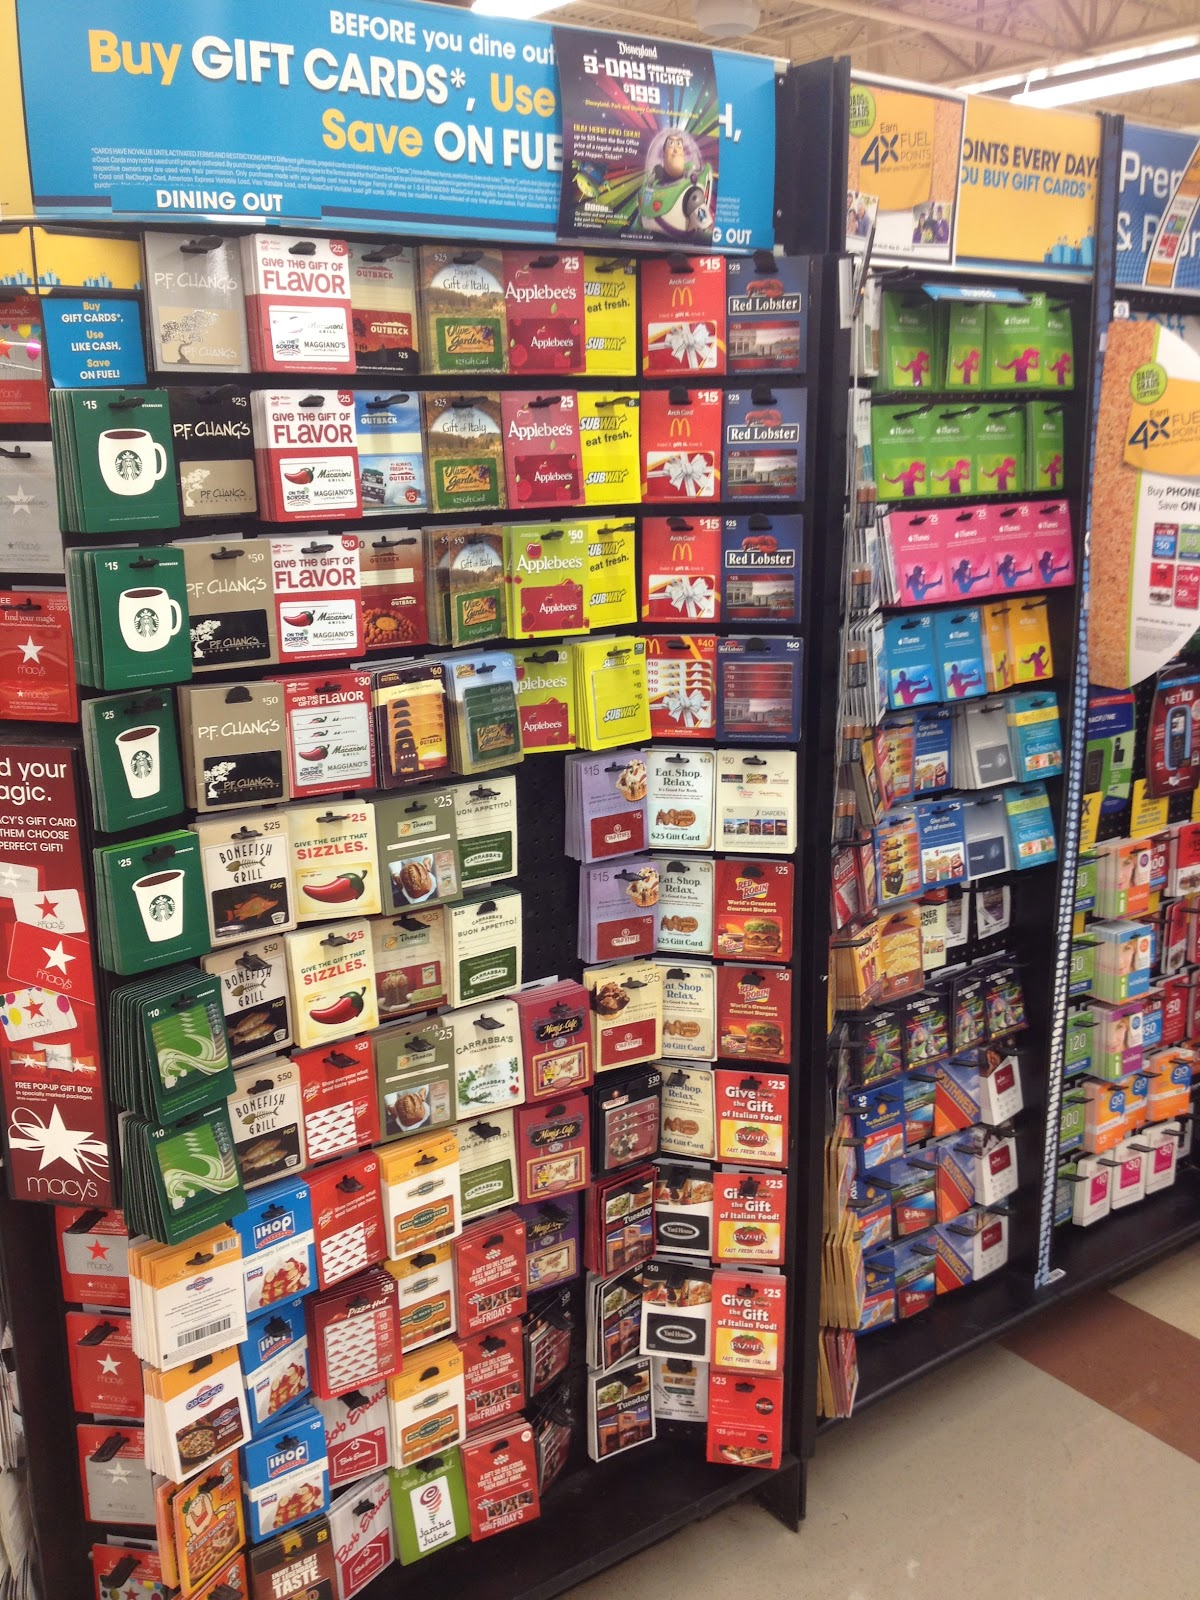 disney gift cards at kroger